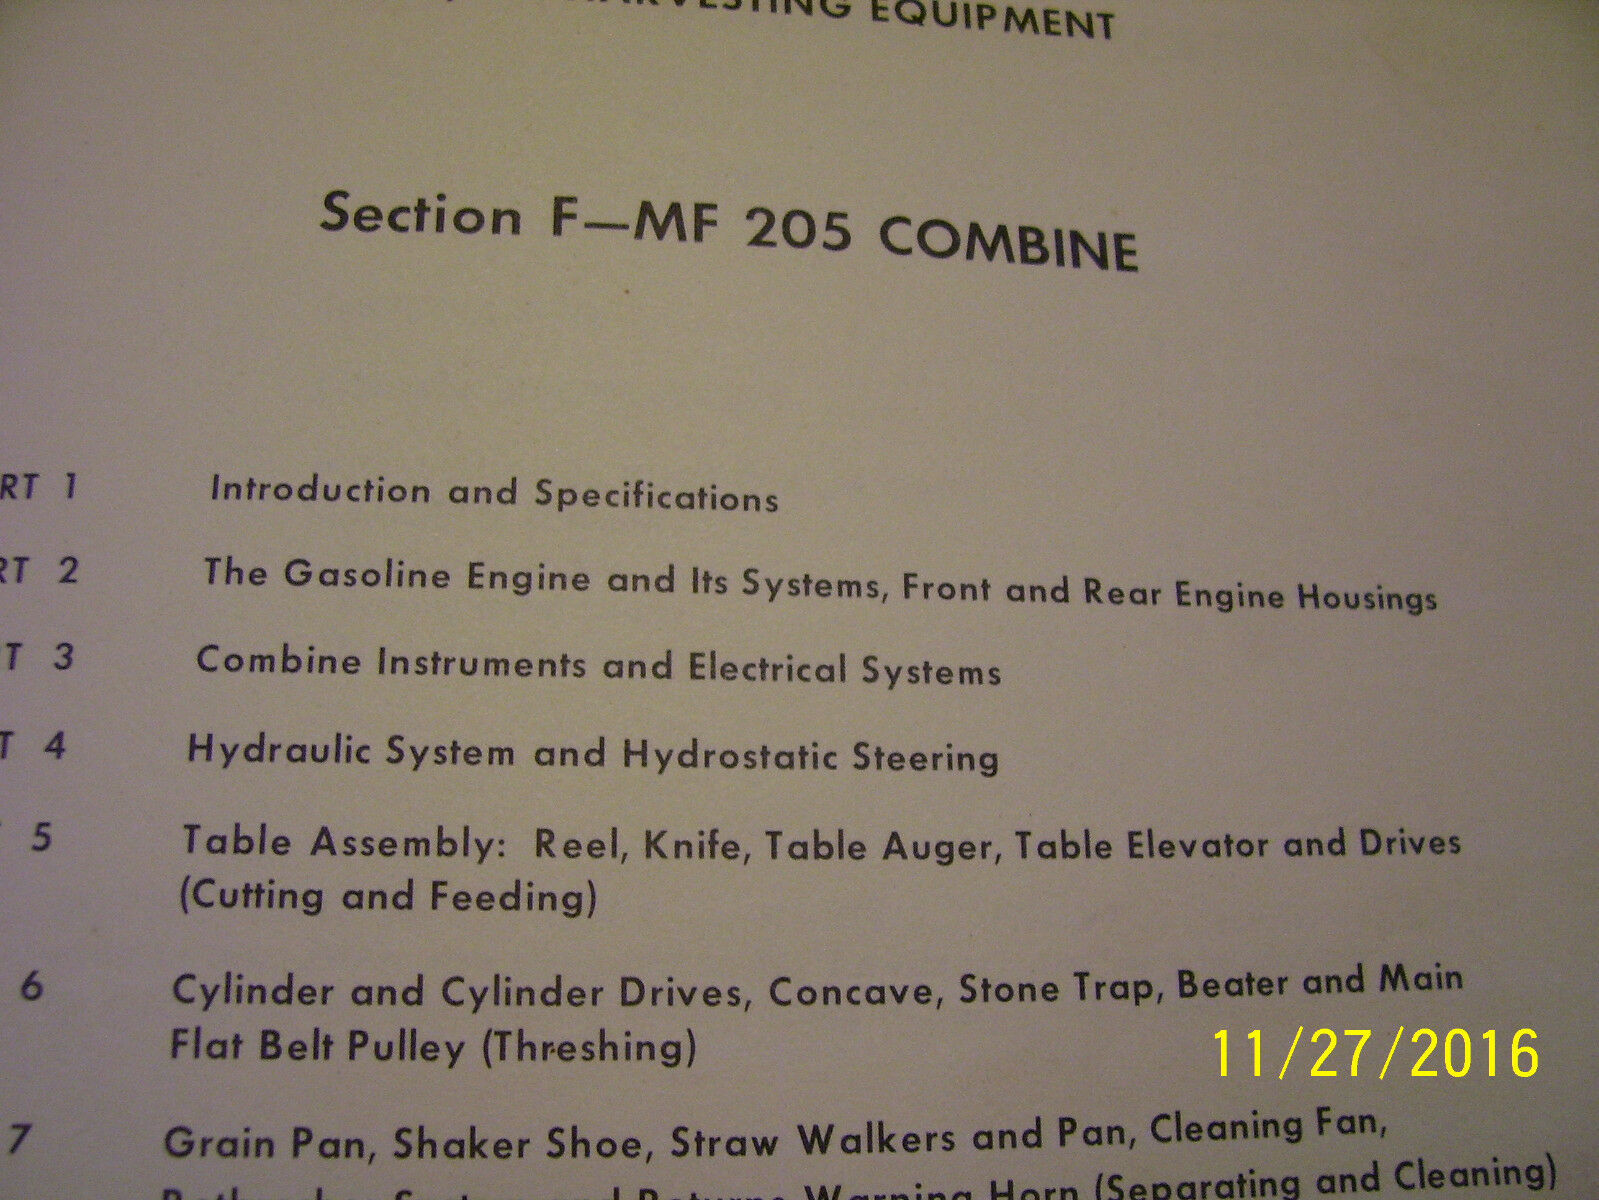 Vintage Massey Ferguson Service Manual -# Mf 205 Combine - 1965 ? 1 of  3Only 1 available ...